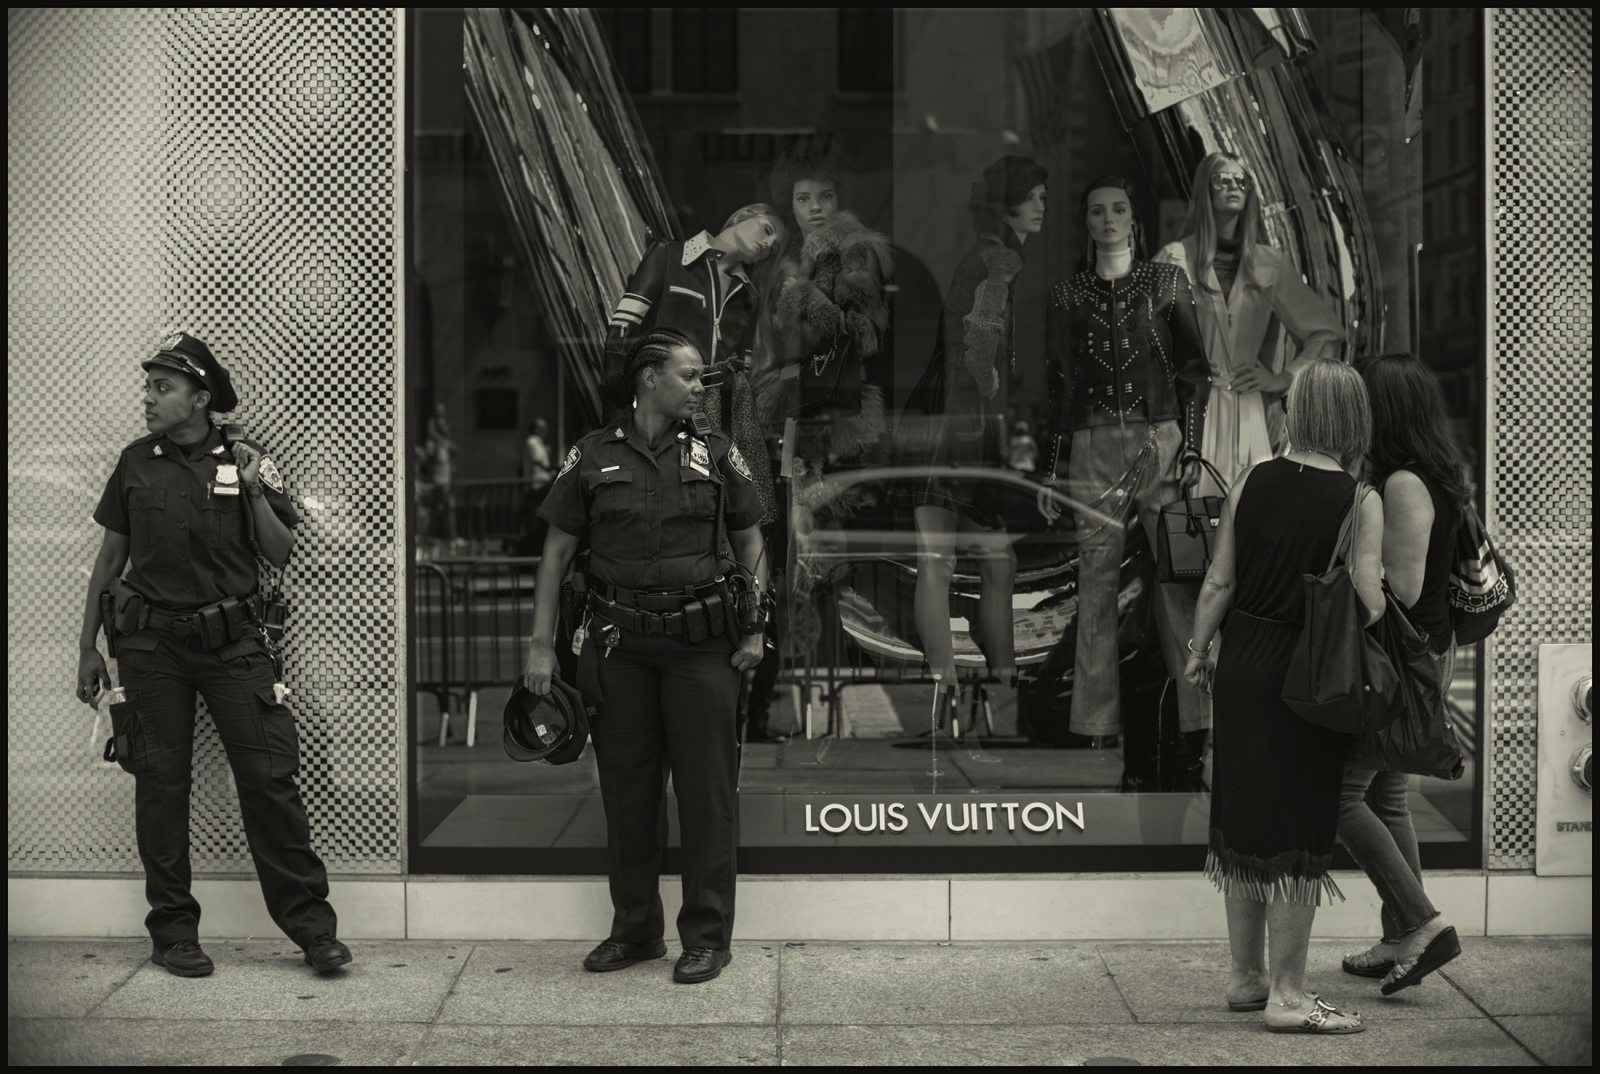 NYPD officers and shoppers in front of Louis Vuitton, Madison Ave. NYC, August 2017.